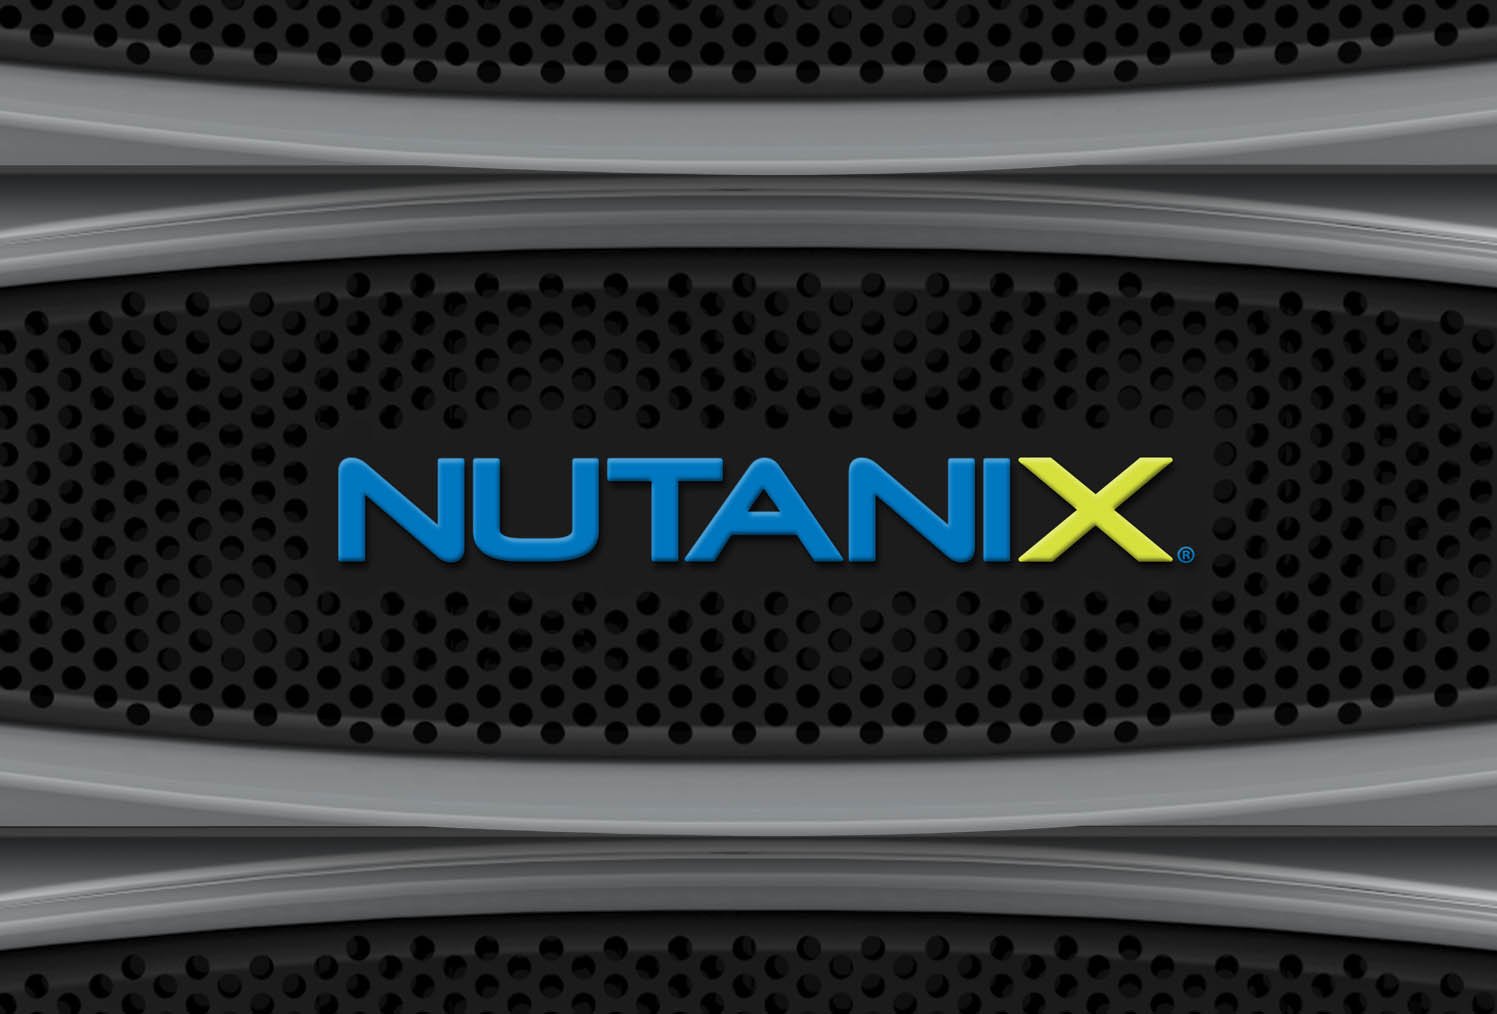 Nutanix Solution Enables Toyota Employees to Use 3D CAD Design Software Remotely